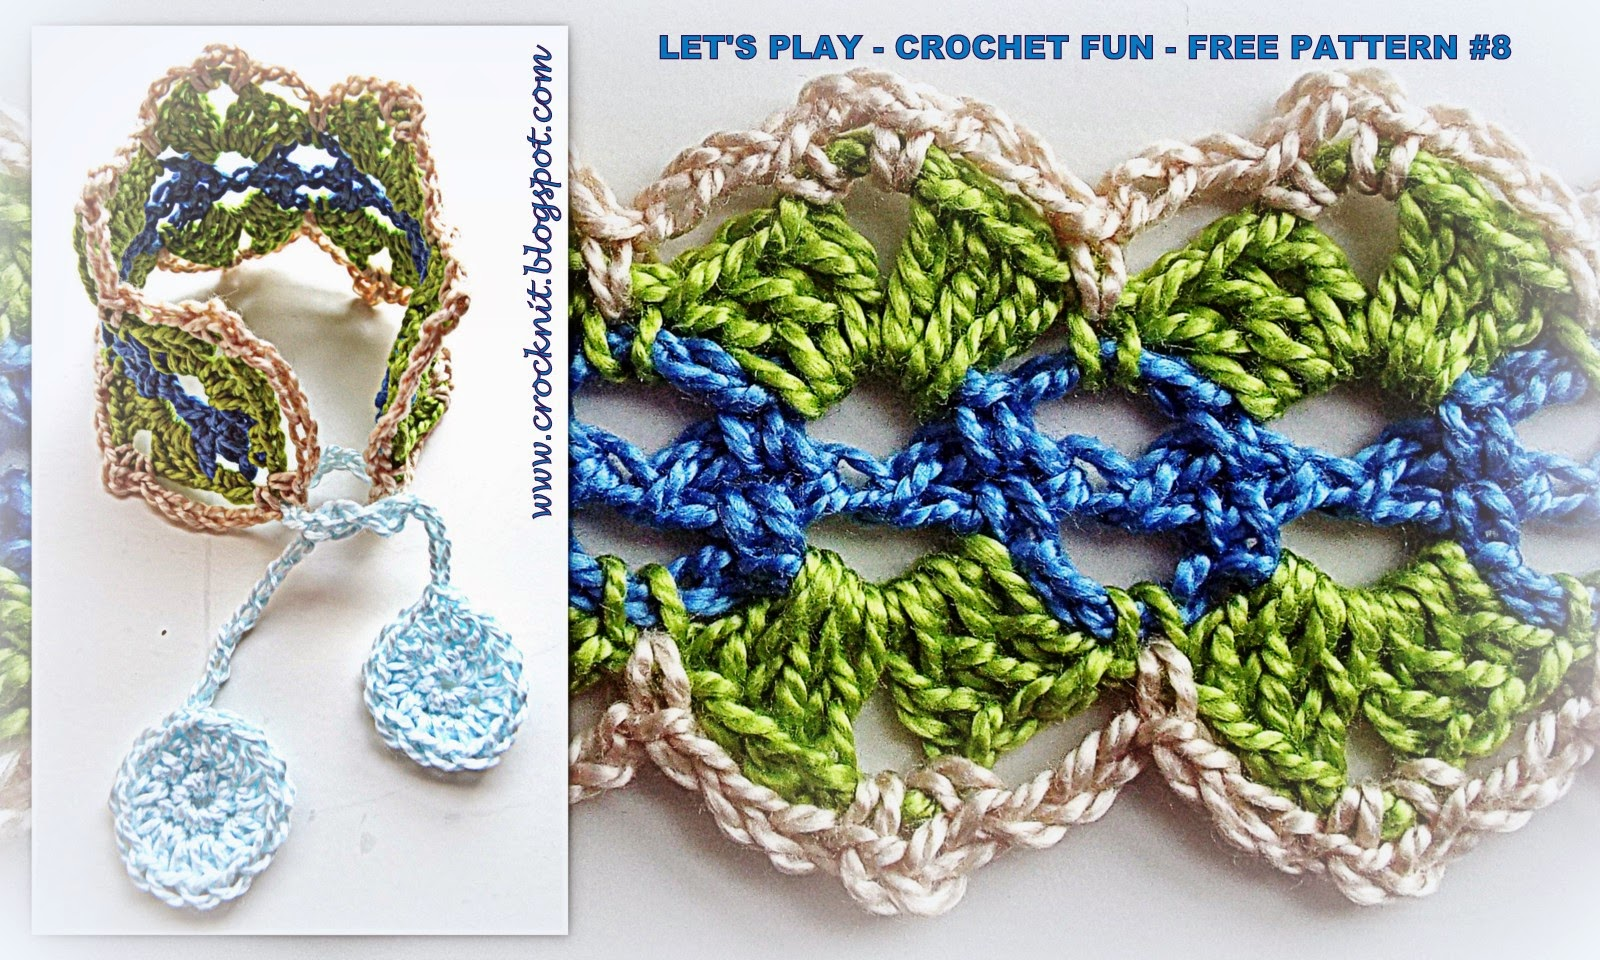 Crochet Stitch Rtrf : MICROCKNIT CREATIONS: LETS PLAY - CROCHET FUN - FREE PATTERN #8